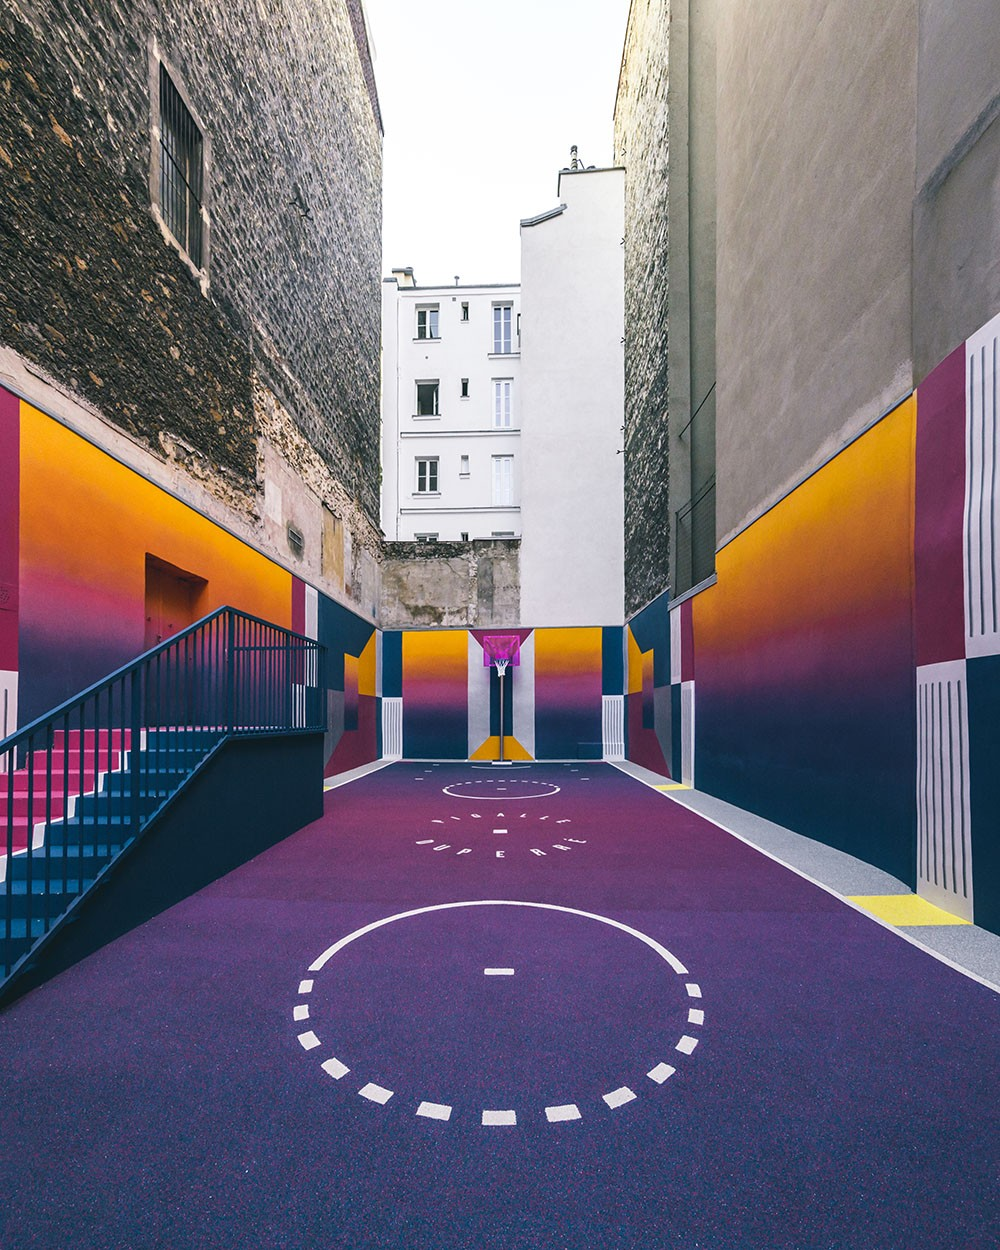 In Paris, Arranged an Unusual Basketball Court